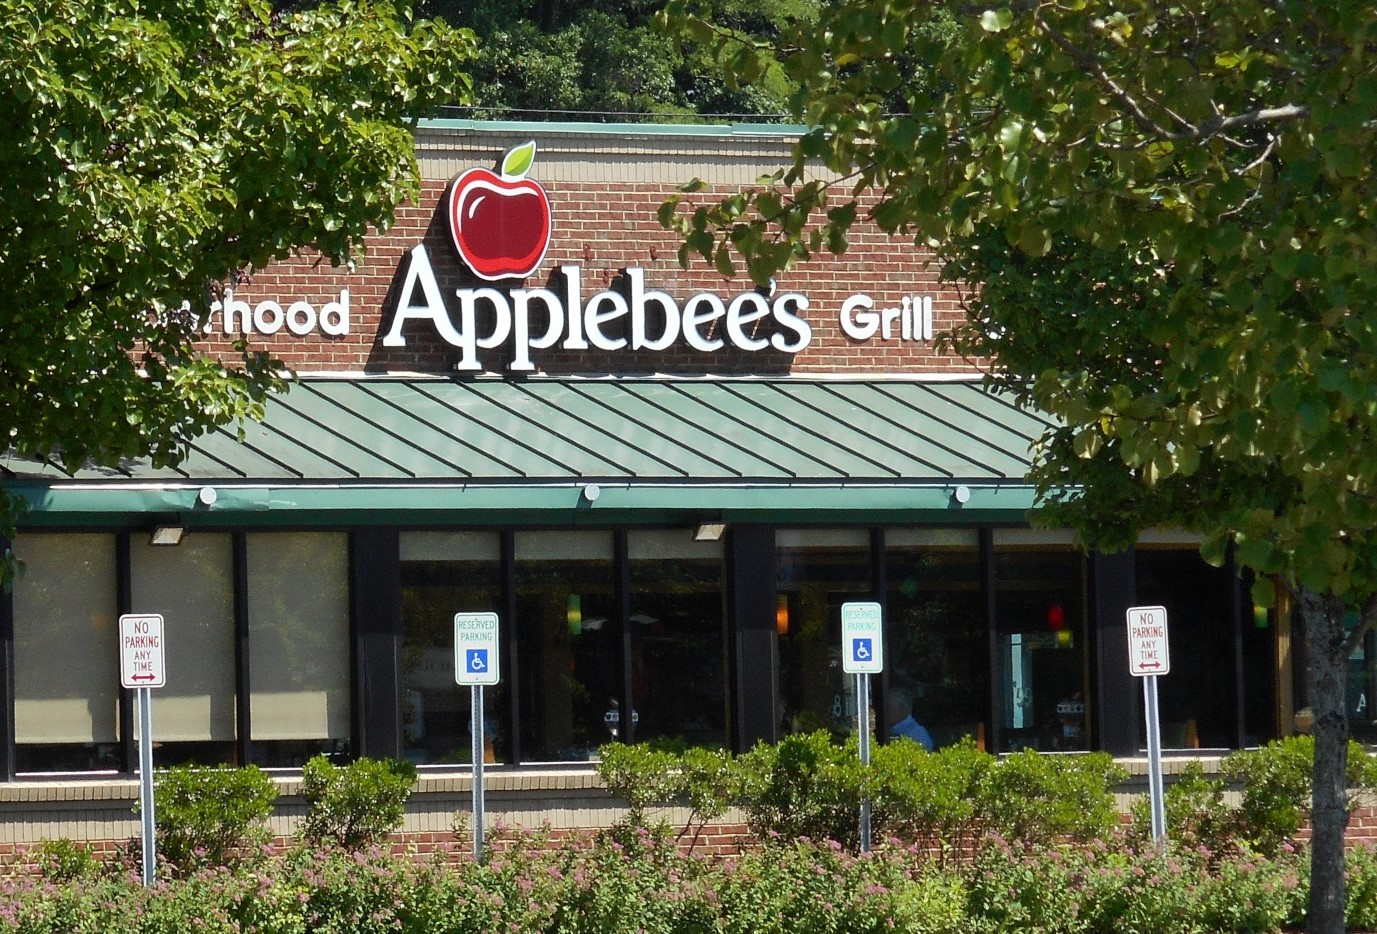 Owner of Four Applebee's Restaurants in Chester County Wins Statewide Award